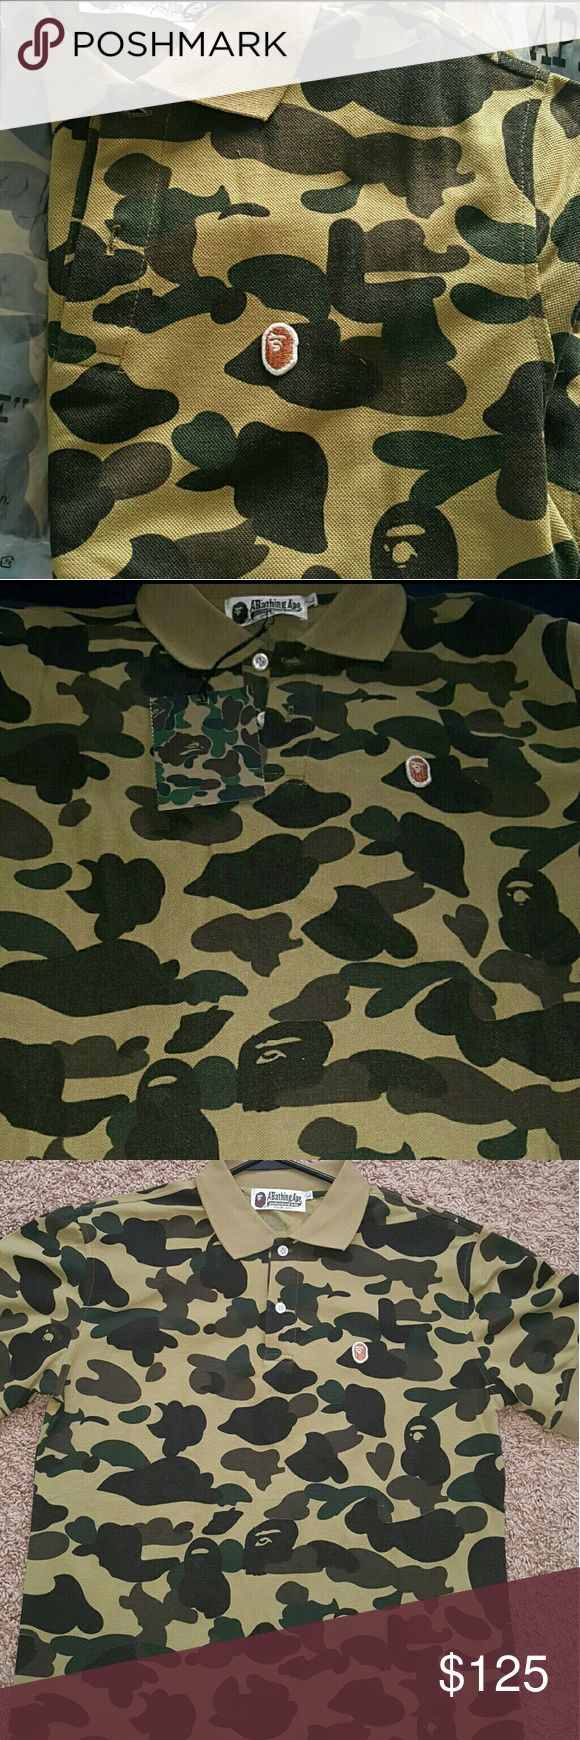 Authentic Bape Camo Collar Shirt  ( Large) Authentic Bape Camo Collar Shirt  Size Large Never Worn! Comes With Original Bag & Tags  $120 FIRM #NoTrades DONT HMU UNLESS YOU READY 2 BUY TODAY!  #SeriousInquiryOnly #NeedGoneAsap bape Shirts Polos